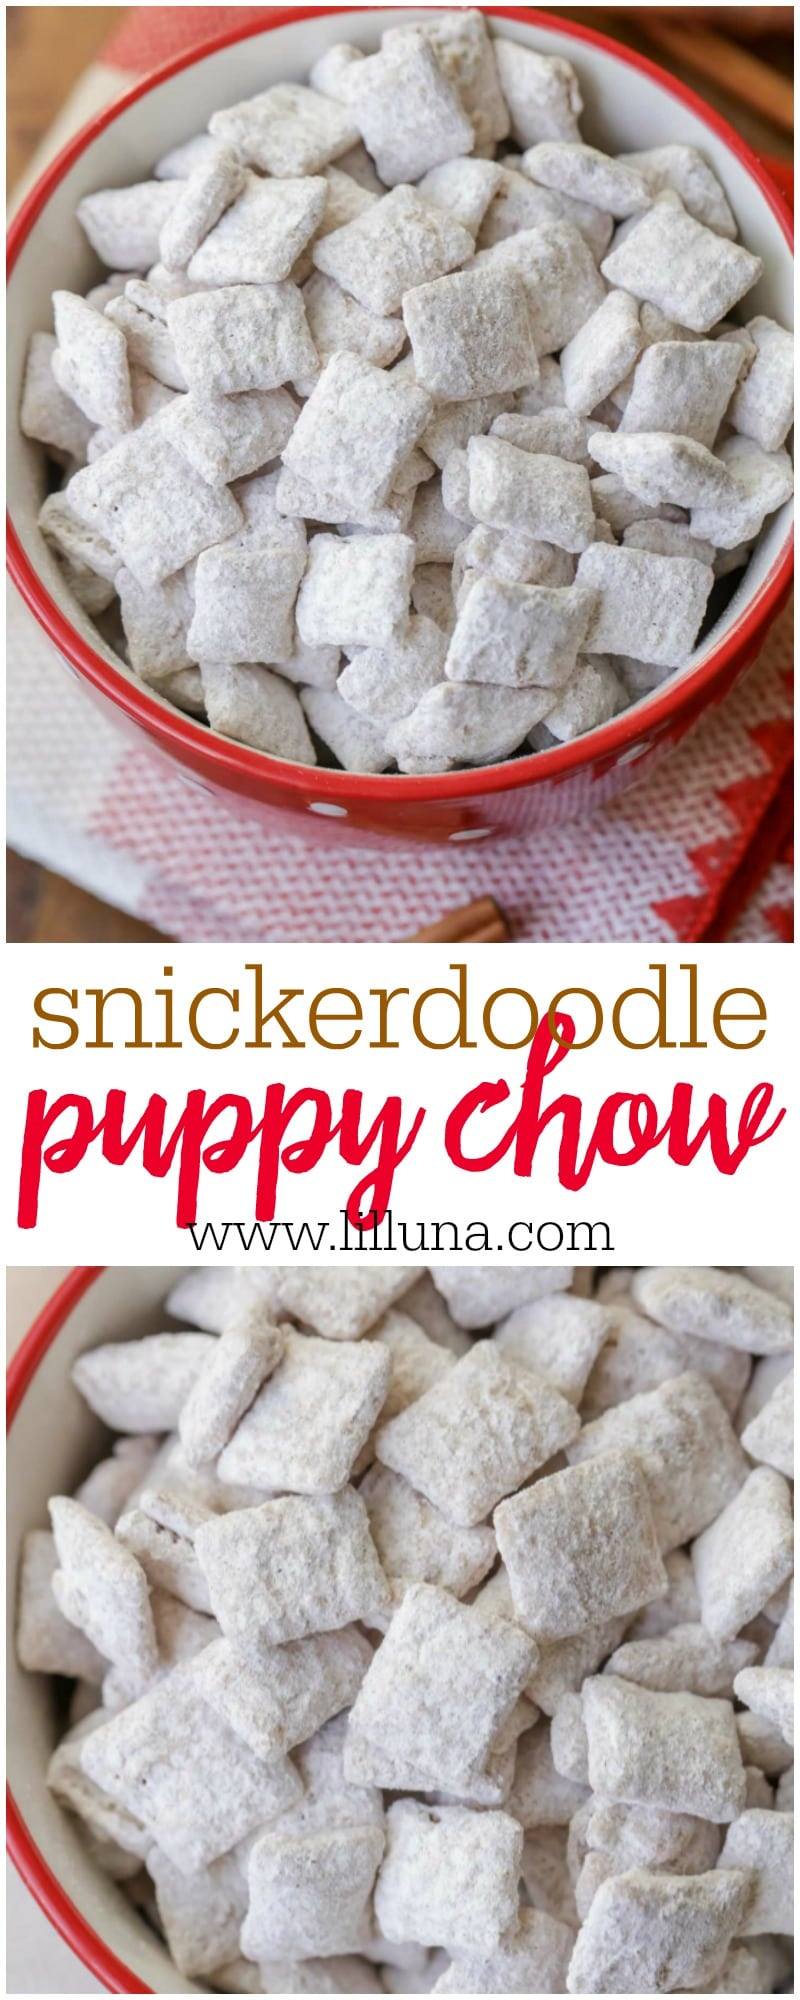 Everyone loves this Snickerdoodle puppy chow recipe that is covered in white chocolate, powdered sugar and cinnamon. It's so addicting!